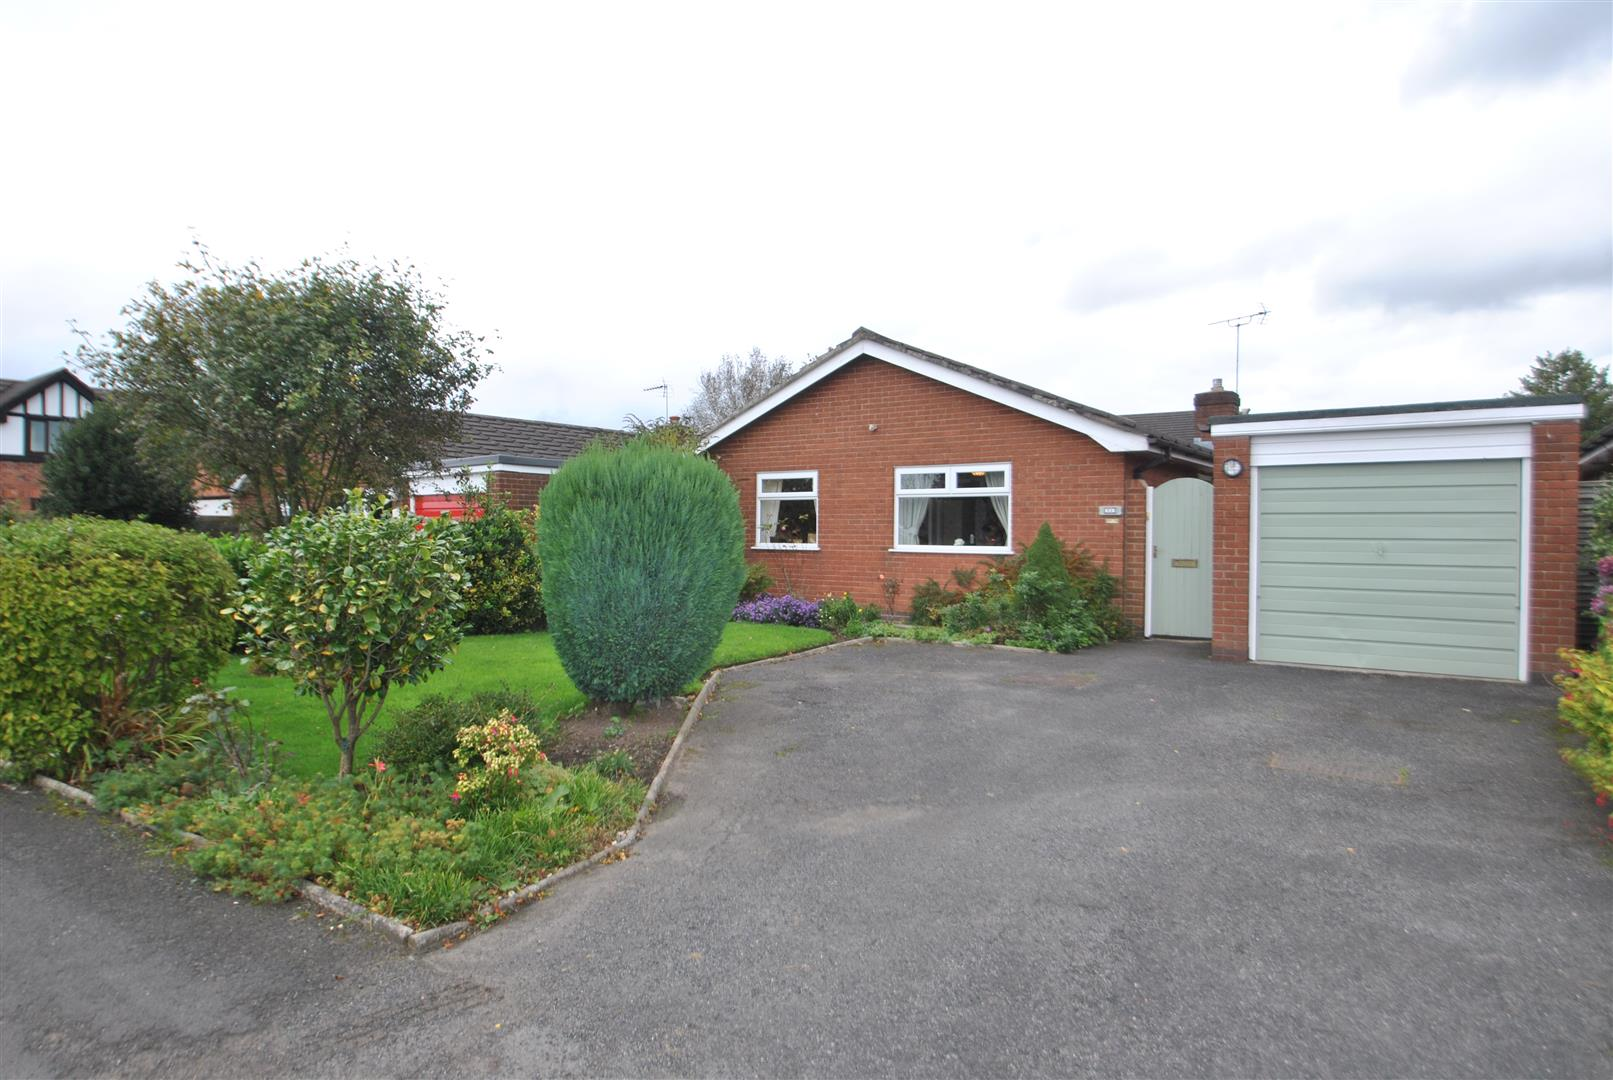 3 Bedrooms Detached Bungalow for sale in Thorntree Green, APPLETON THORN, Warrington, WA4